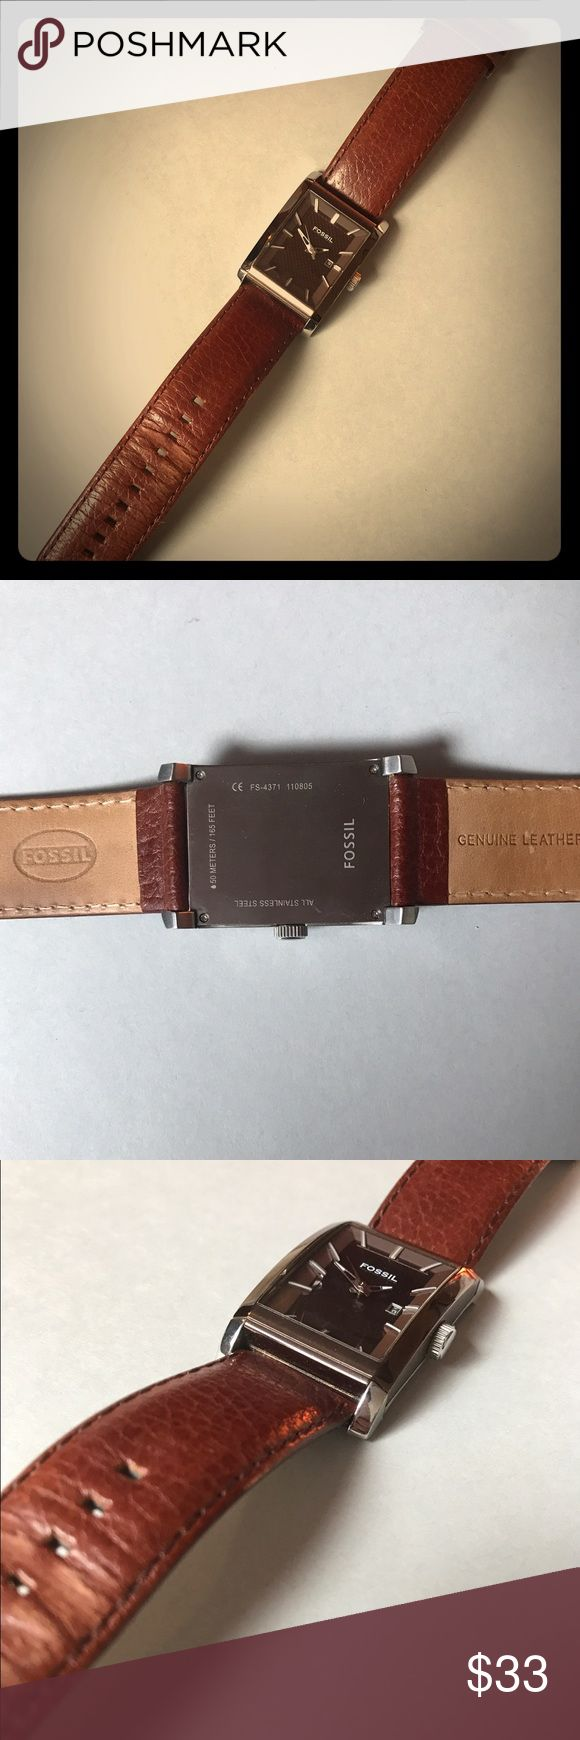 Men's Leather Fossil Watch NEEDS BATTERY REPLACEMENT! Brown leather Fossil watch with rectangular face. Stainless steel and leather, light wear. Fossil Other